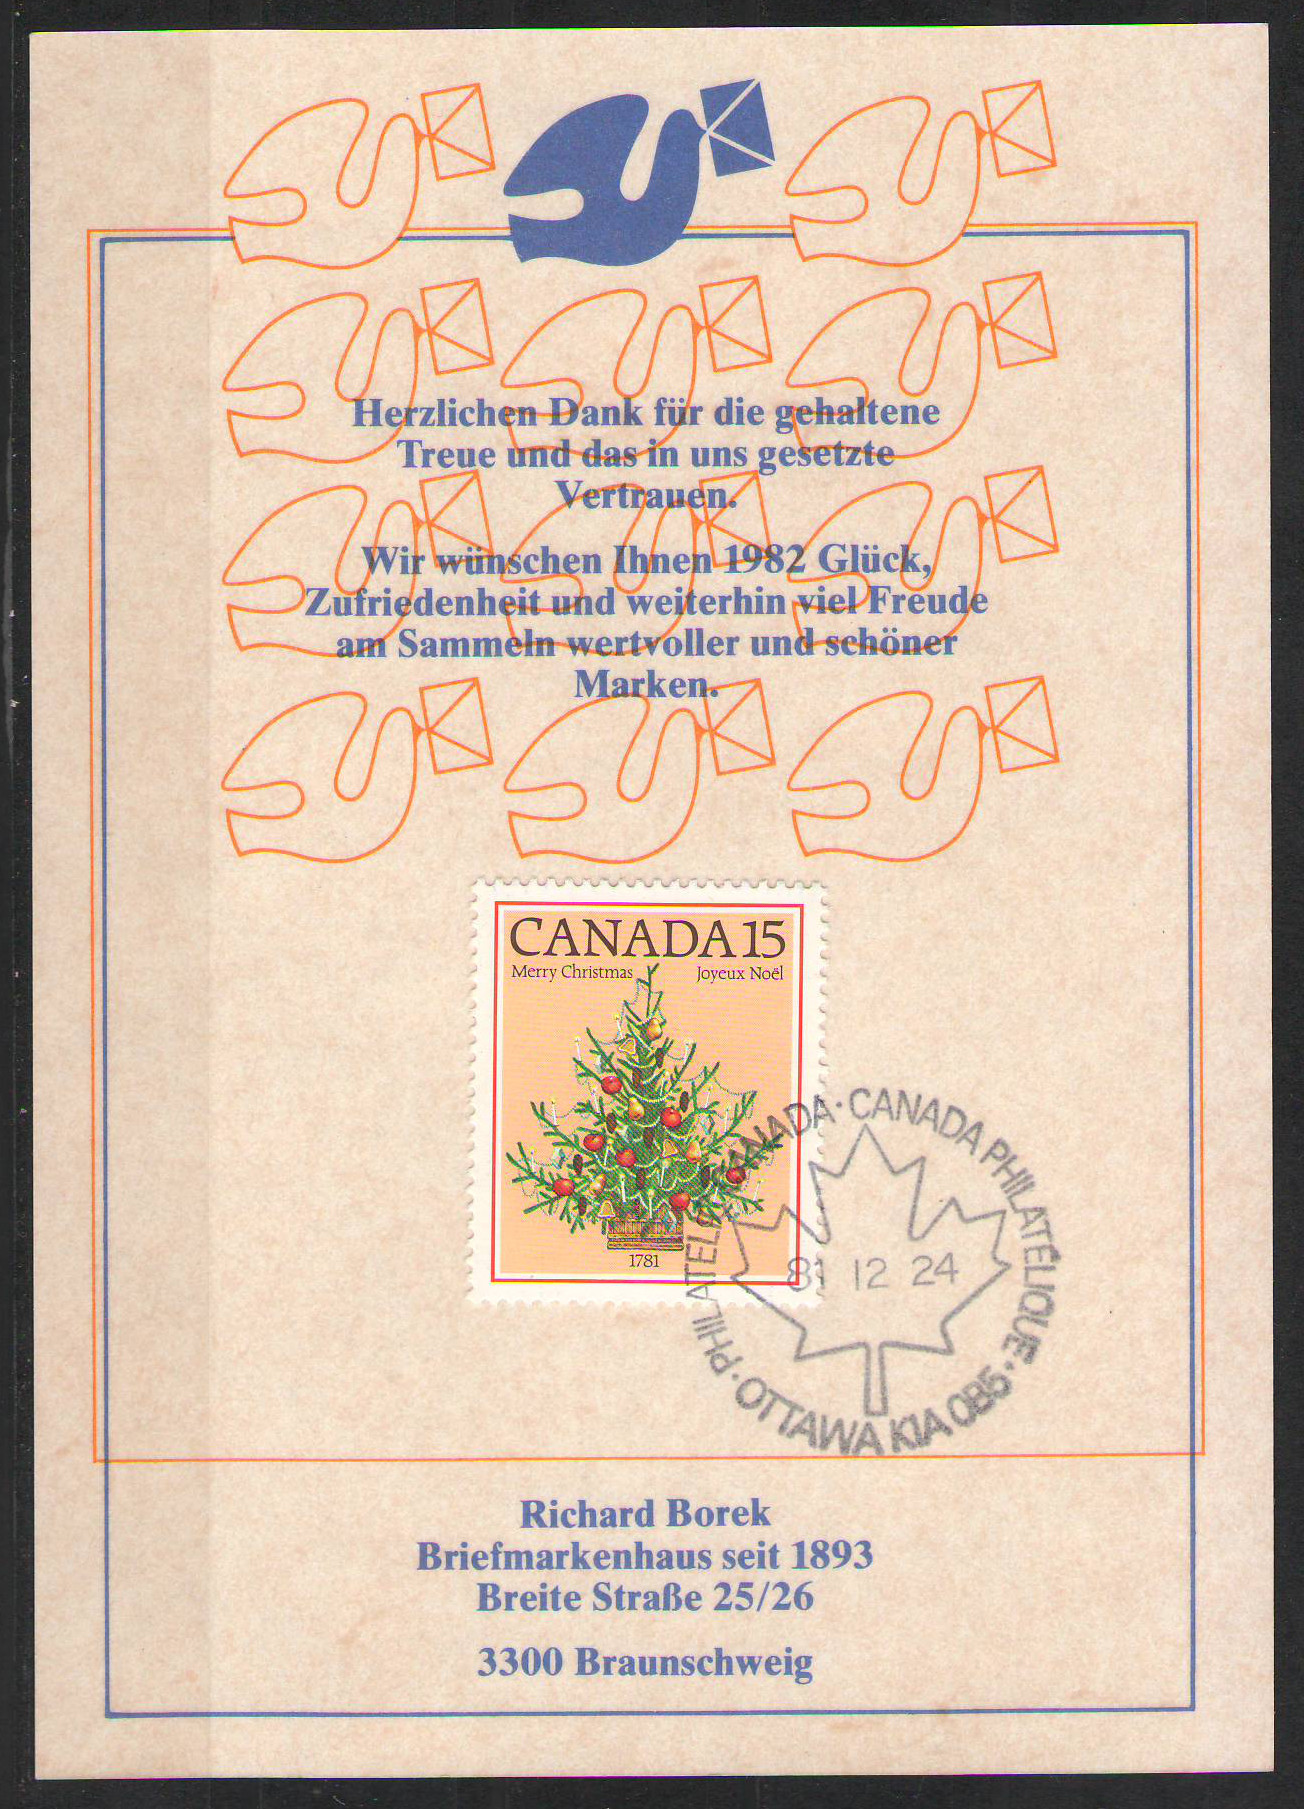 Canada - 1981 Christmas 15c Stamp with Canada Philatelique cds on a Richard Borek Christmas Card